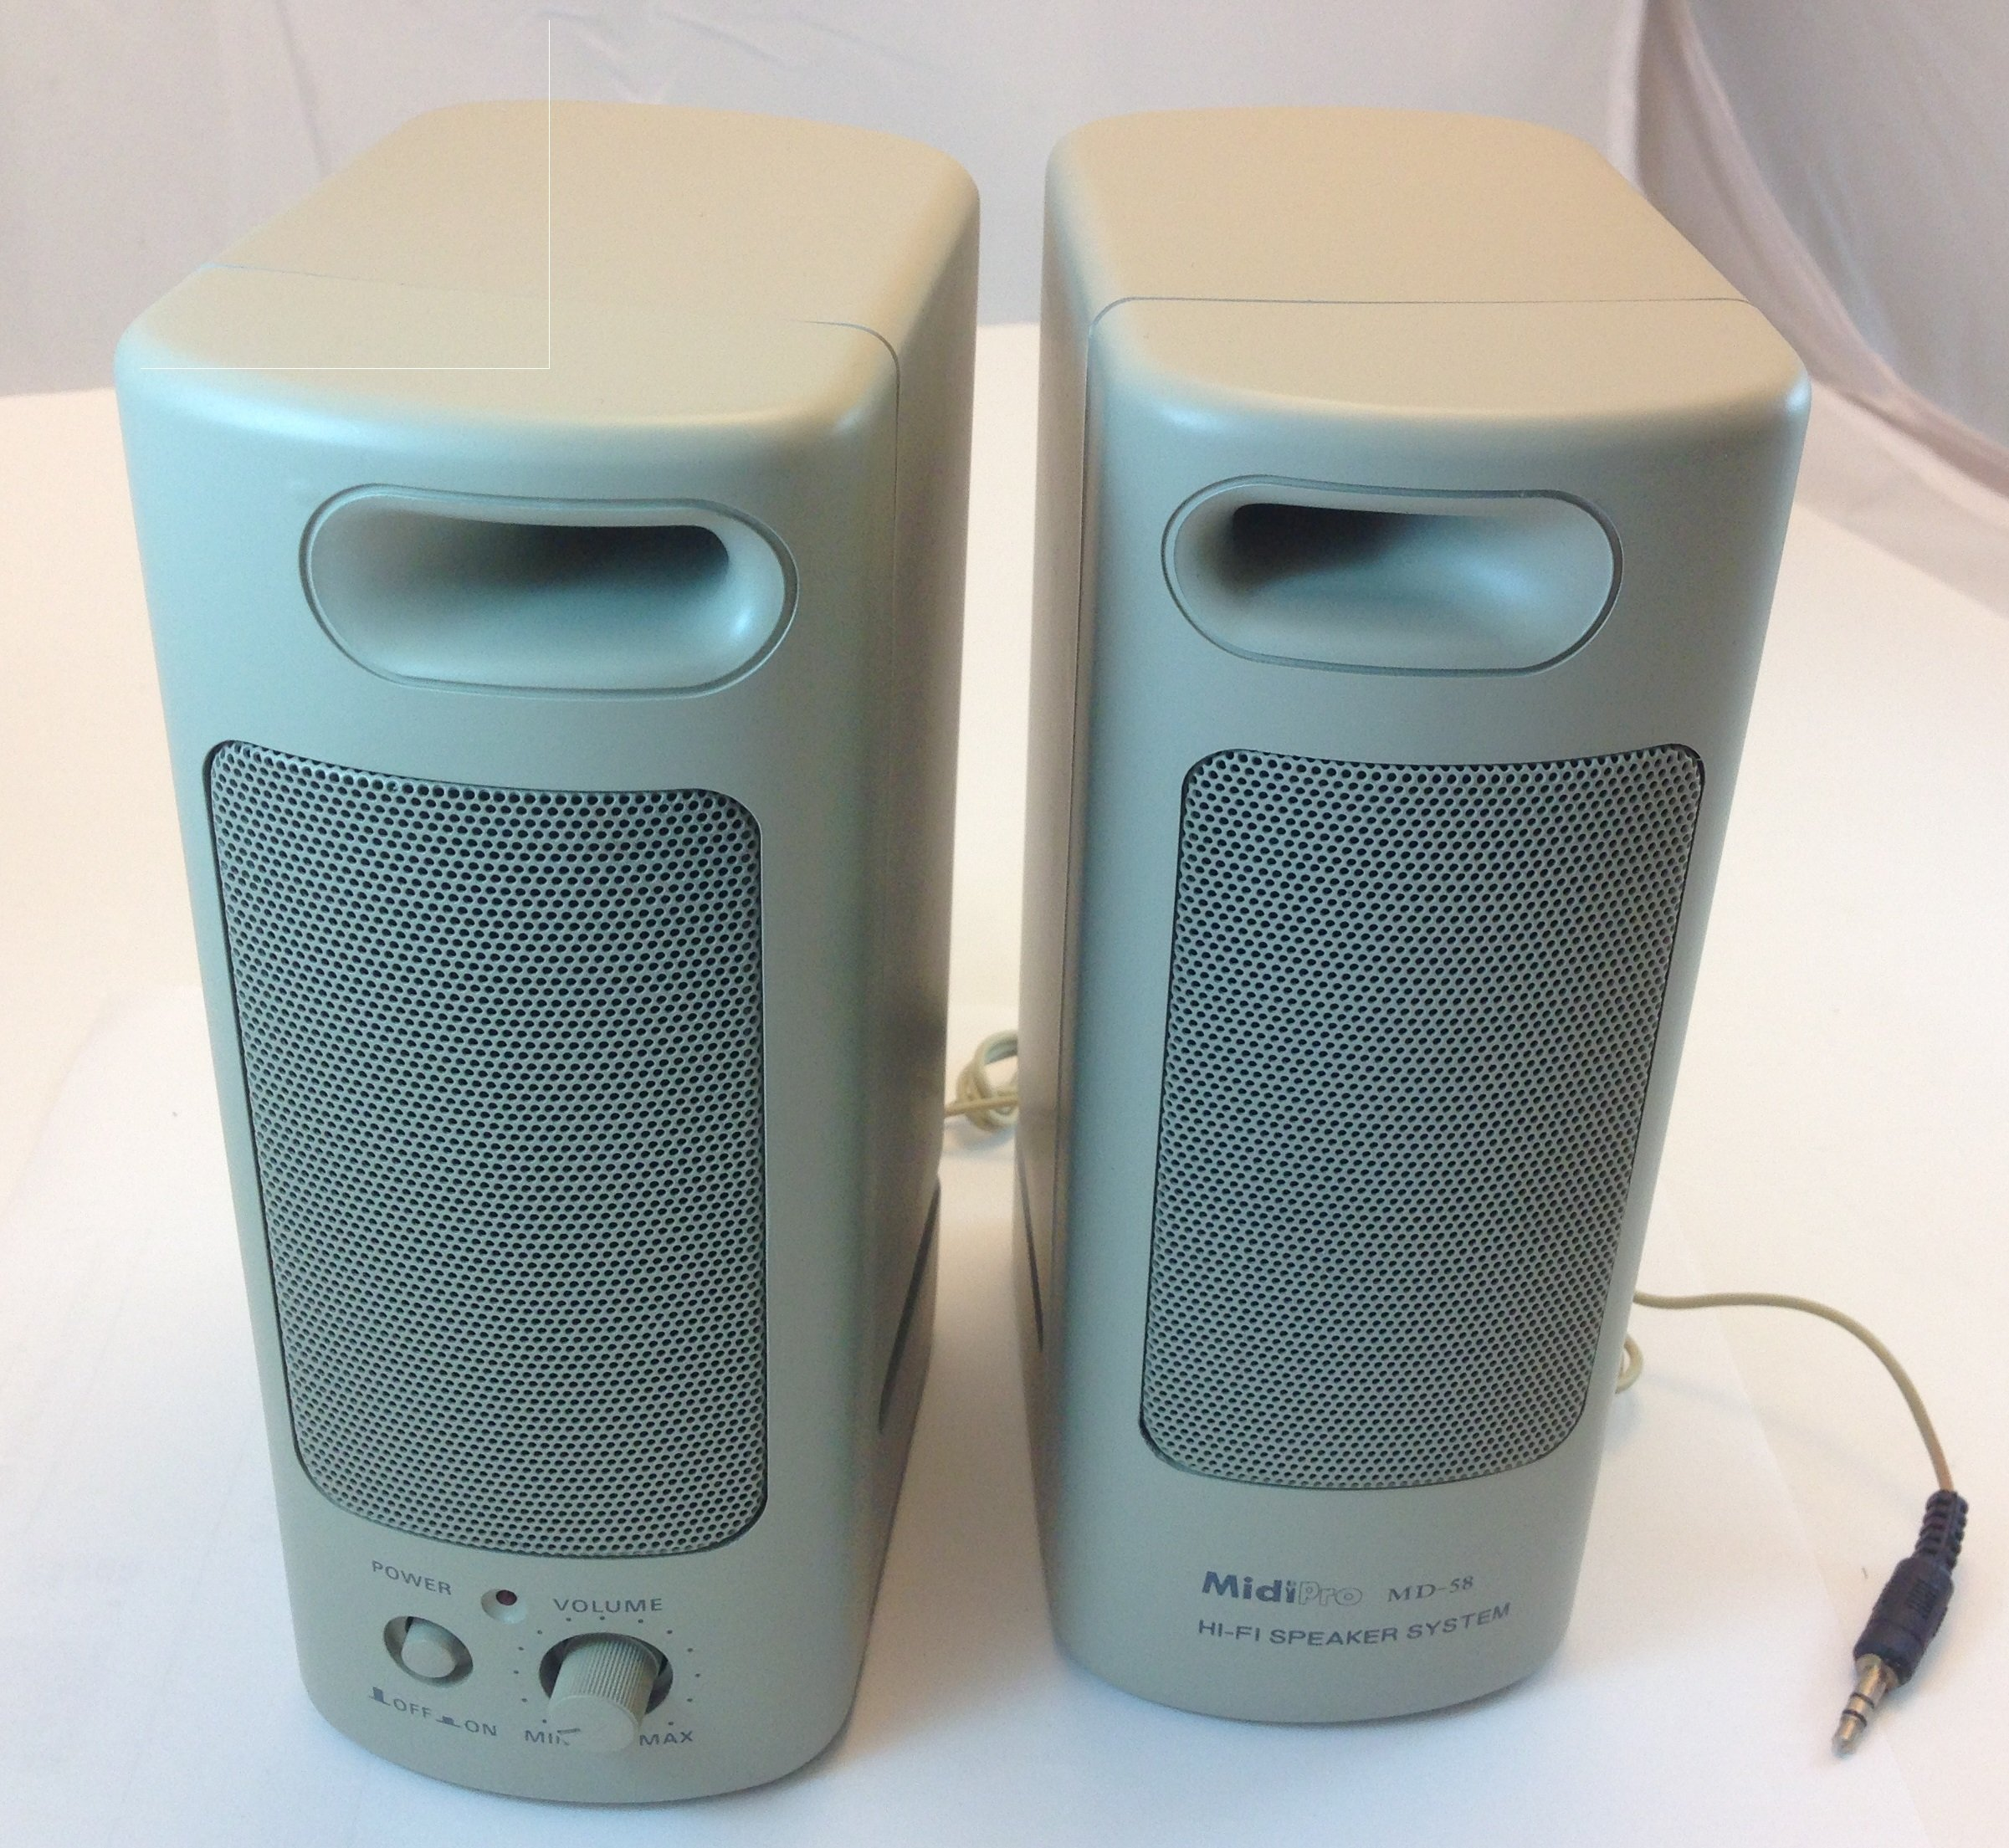 MULTI-MEDIA AMPLIFIED SPEAKERS FOR COMPUTER, PORTABLE FOR MP3 PLAYER/CELLPHONE CONNECTION by CES